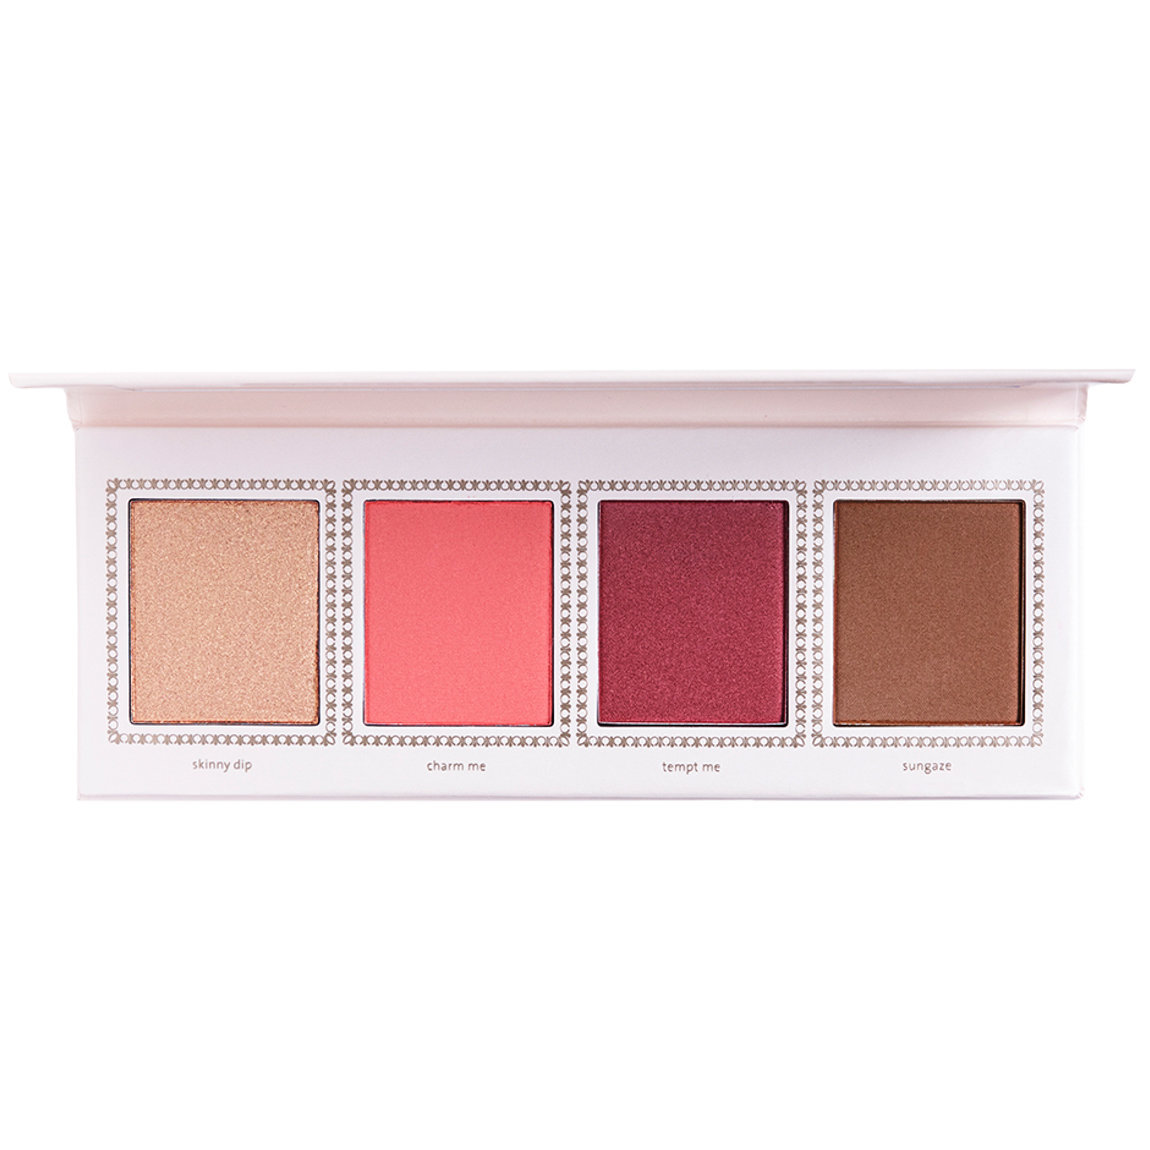 Jouer Cosmetics Champagne & Macarons Face Palette Cheeky Crush product swatch.